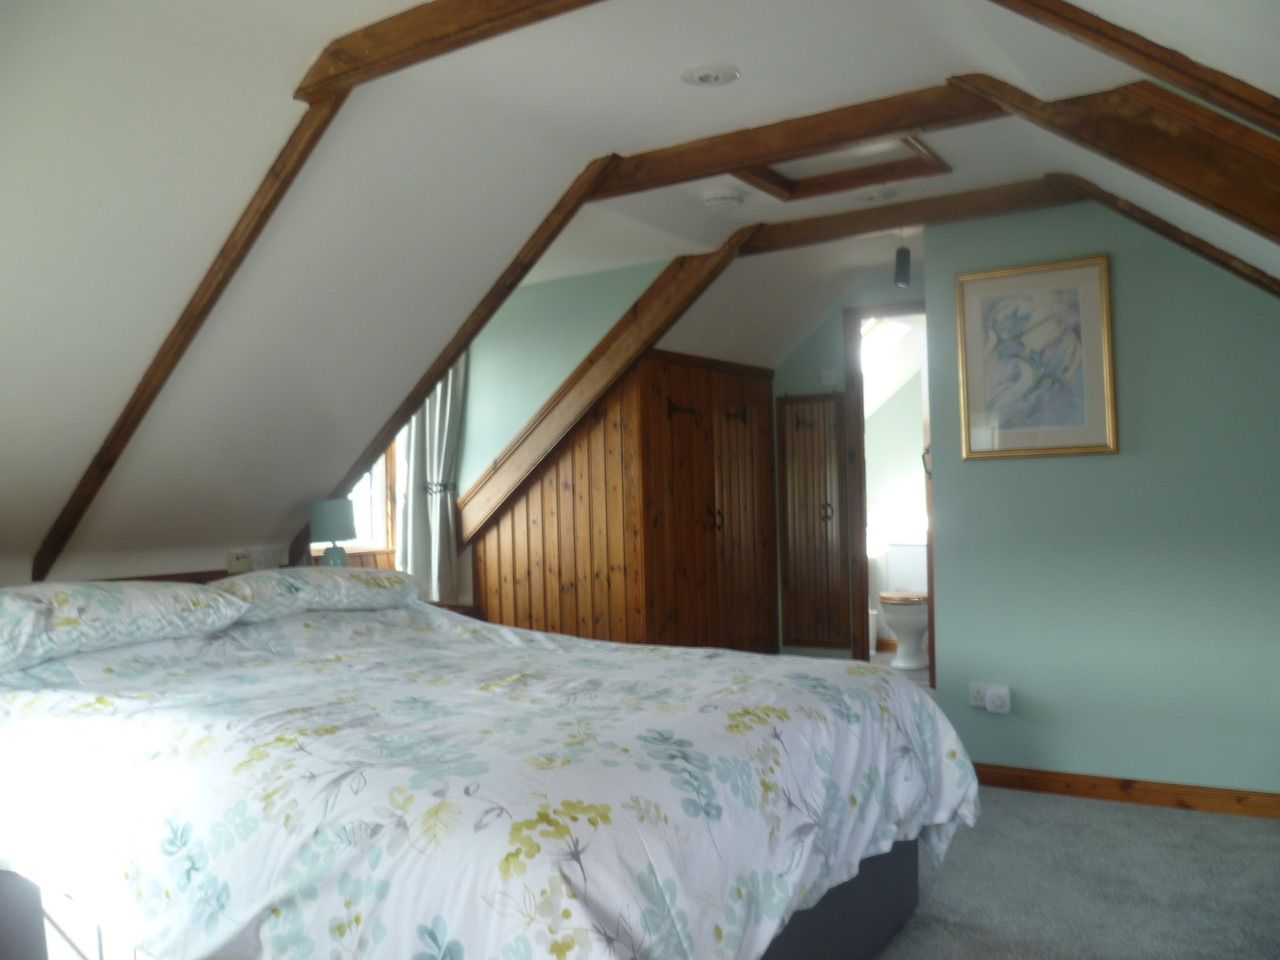 Second Floor - Master bedroom (king size bed)with en-suite shower and loo